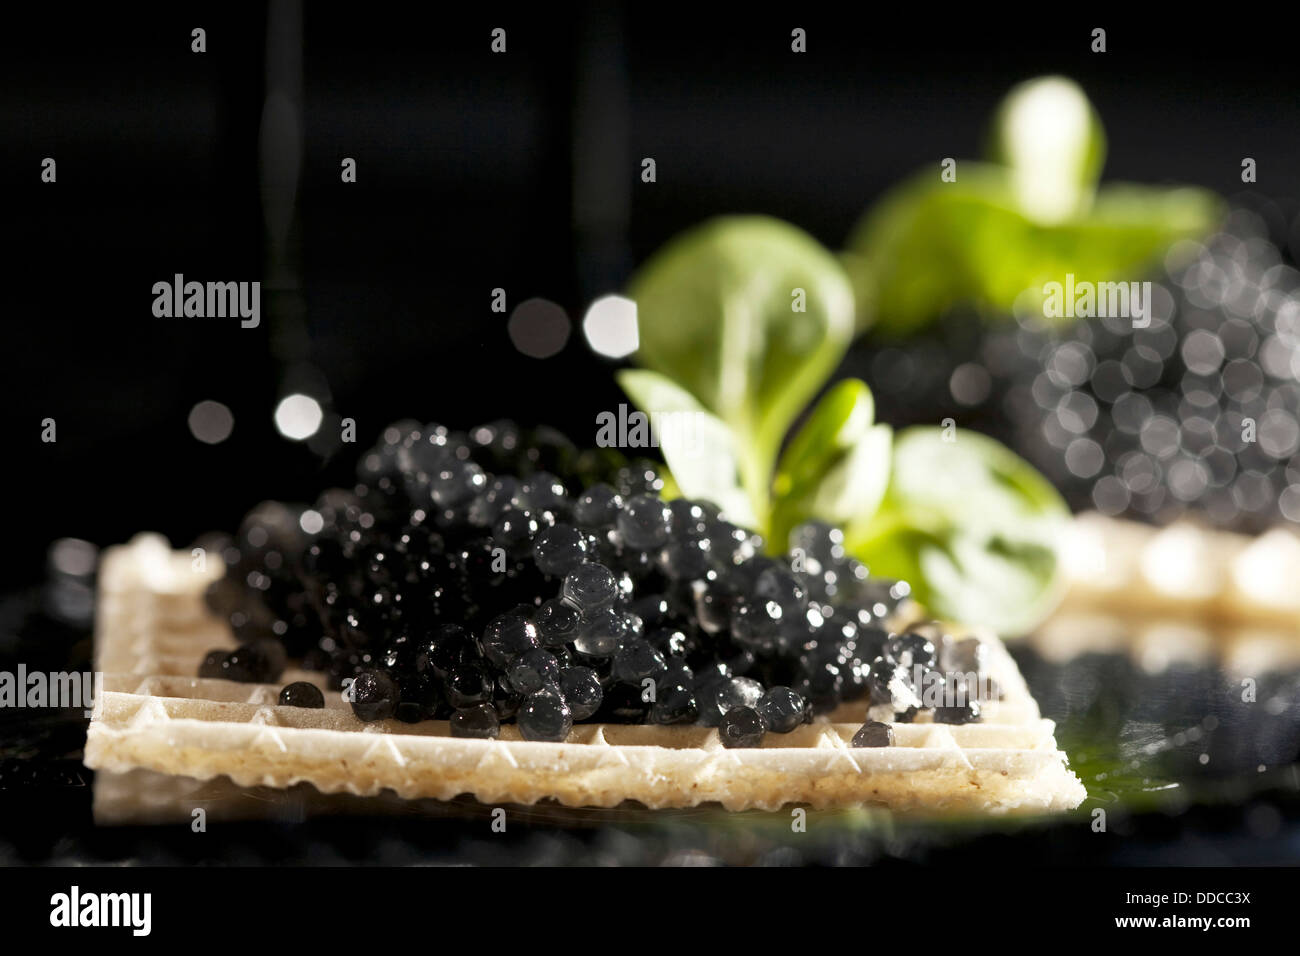 Sandwiches with black caviar on black background - Stock Image